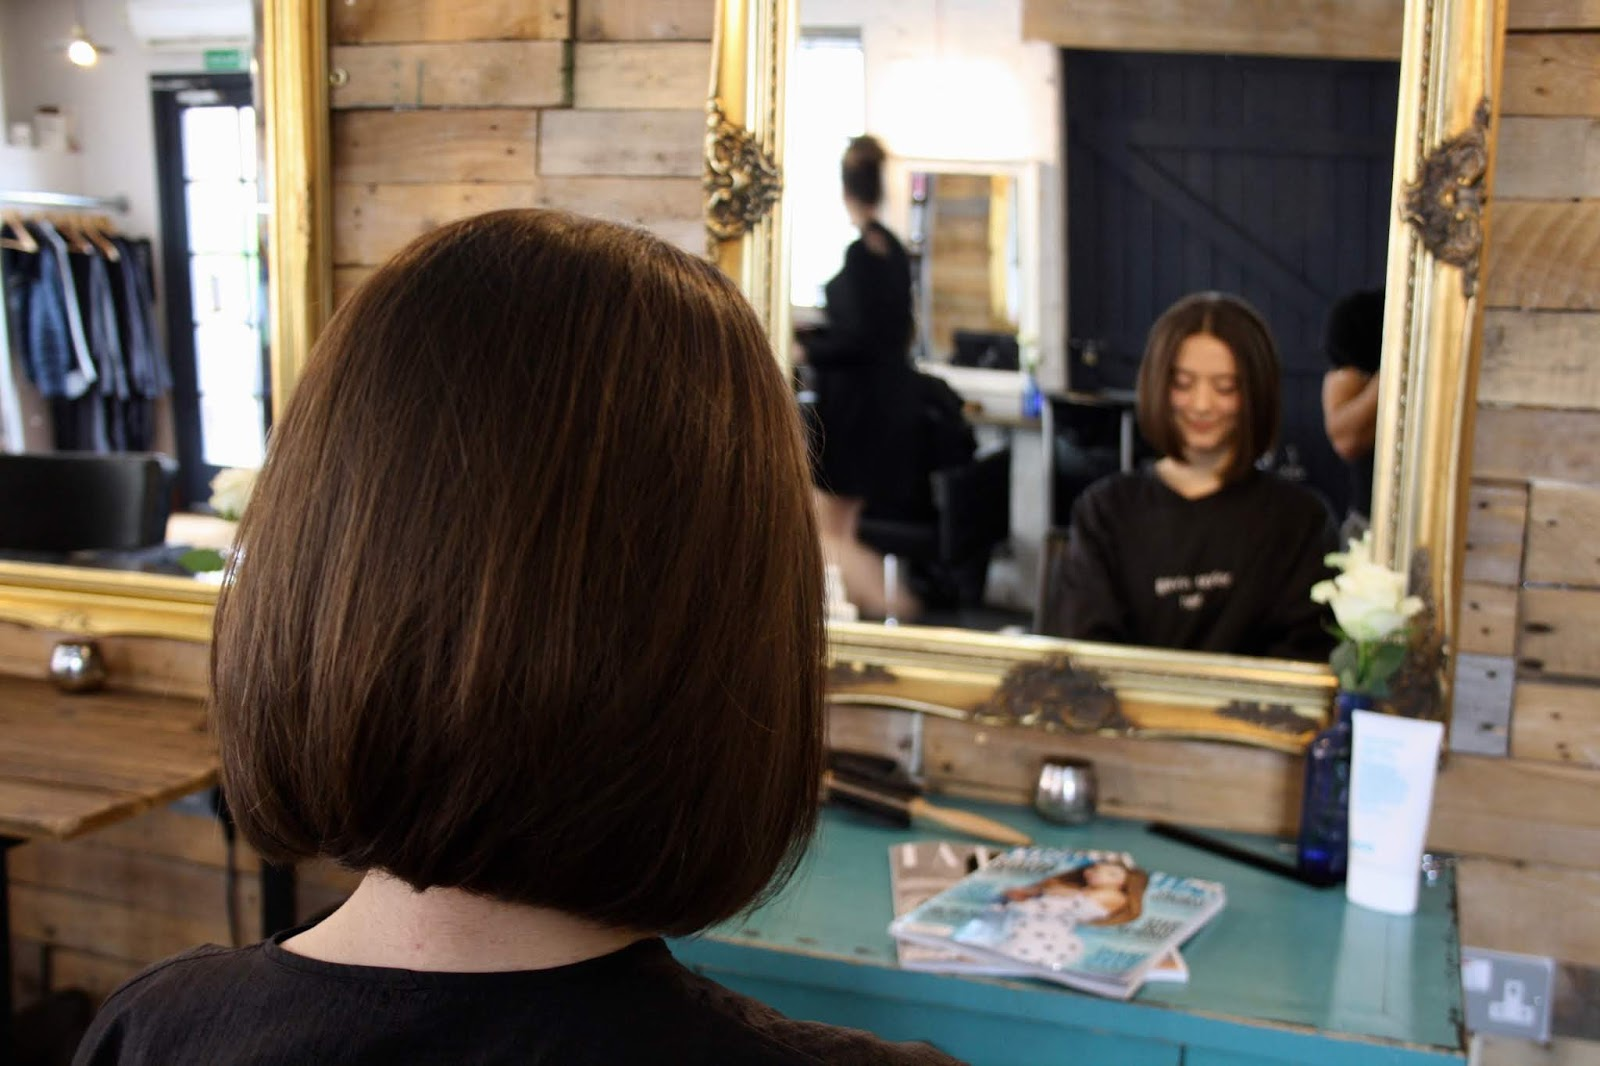 Abbey, with a sleek brunette haircut, sits facing a gold mirror in the Gavin Taylor Hair salon